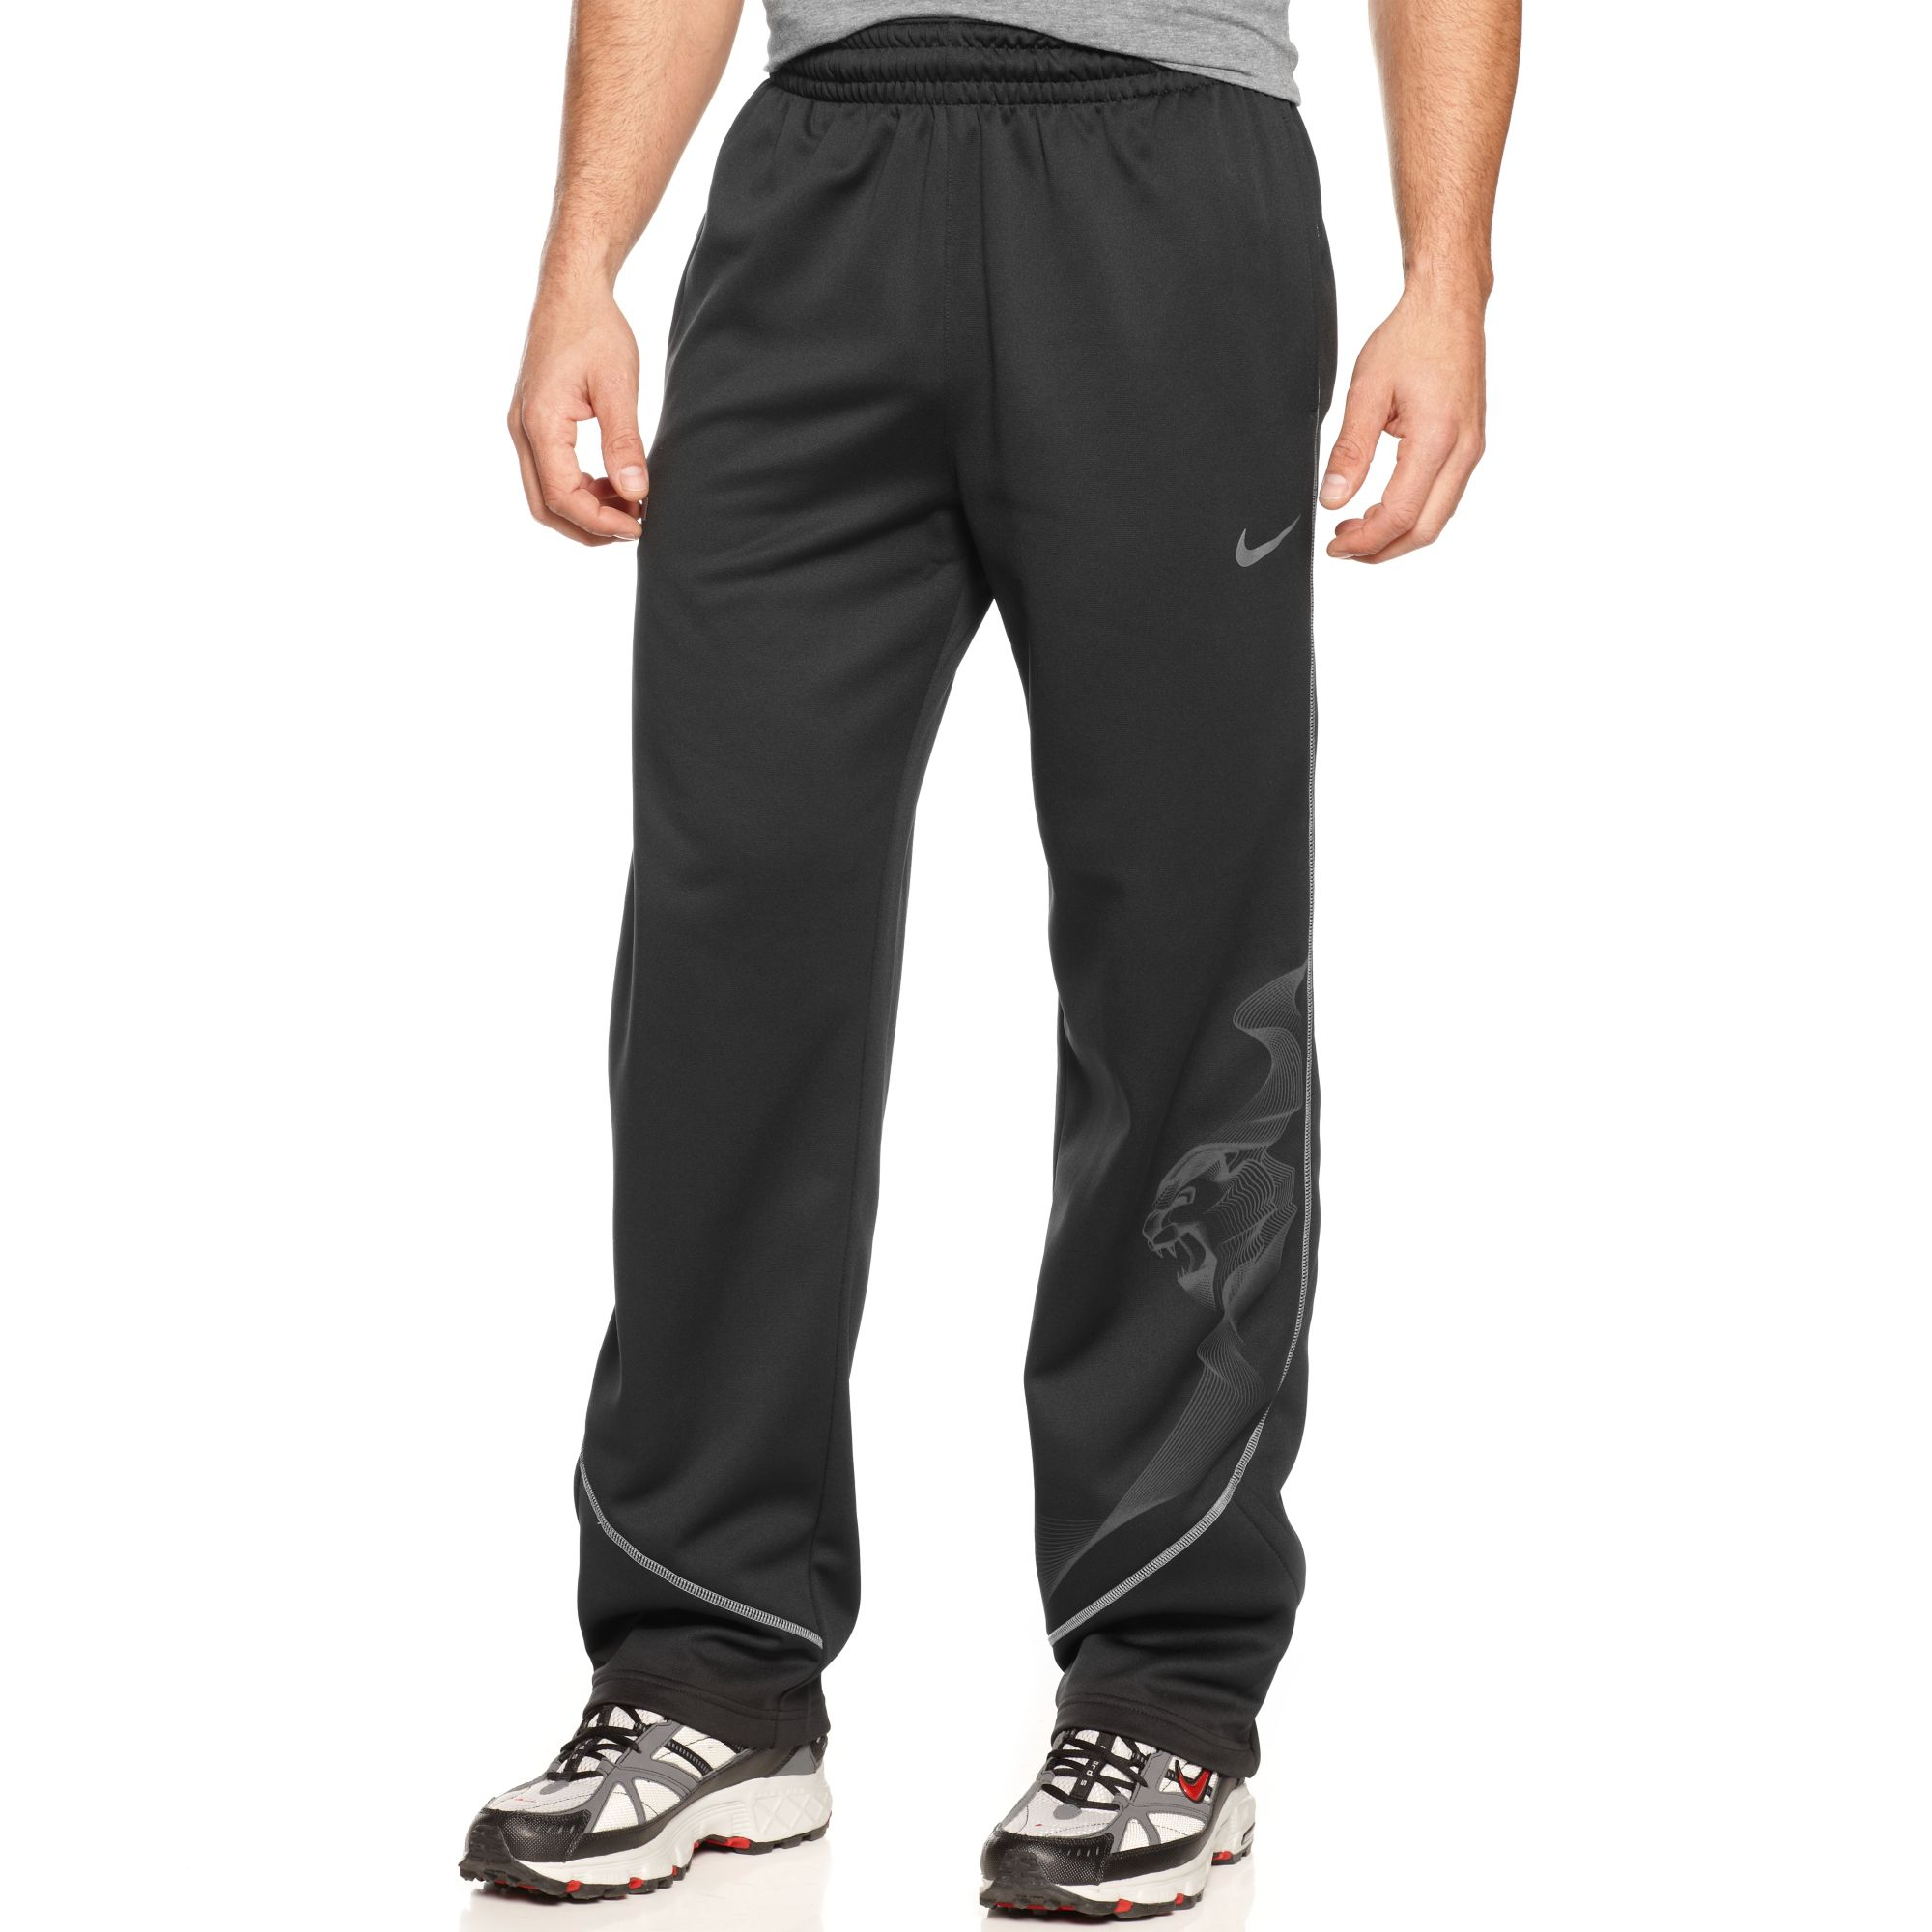 4223473c641 ... low cost lyst nike lebron opposition hero basketball pants in black for  men 98dd3 a44b5